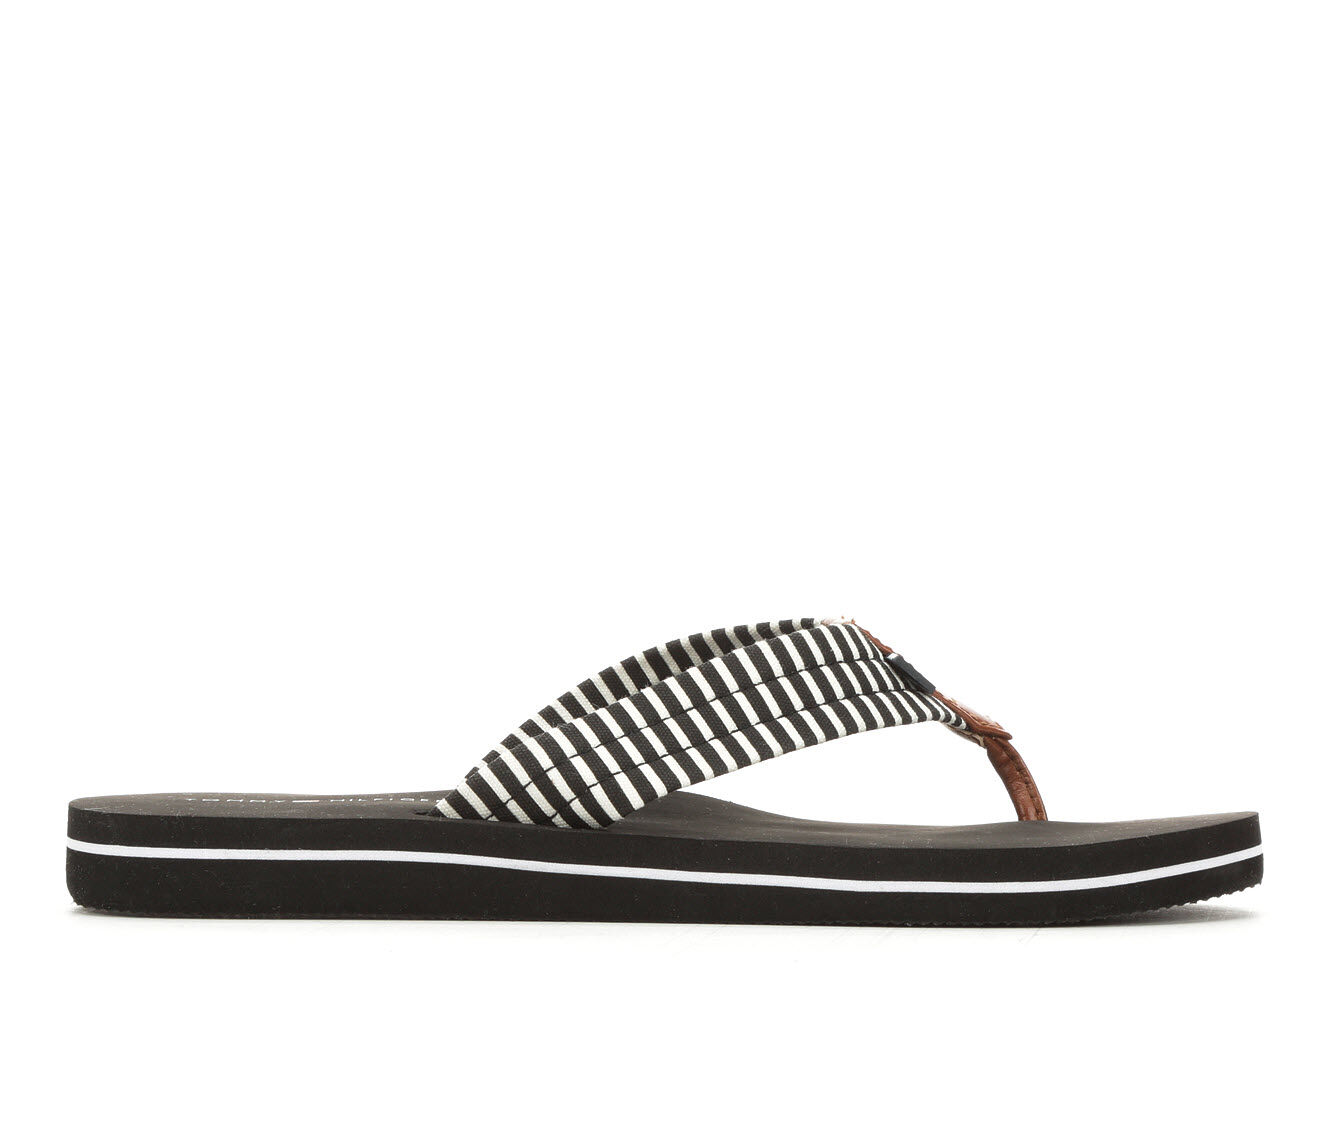 Women's Tommy Hilfiger Craft Sandals Black Multi